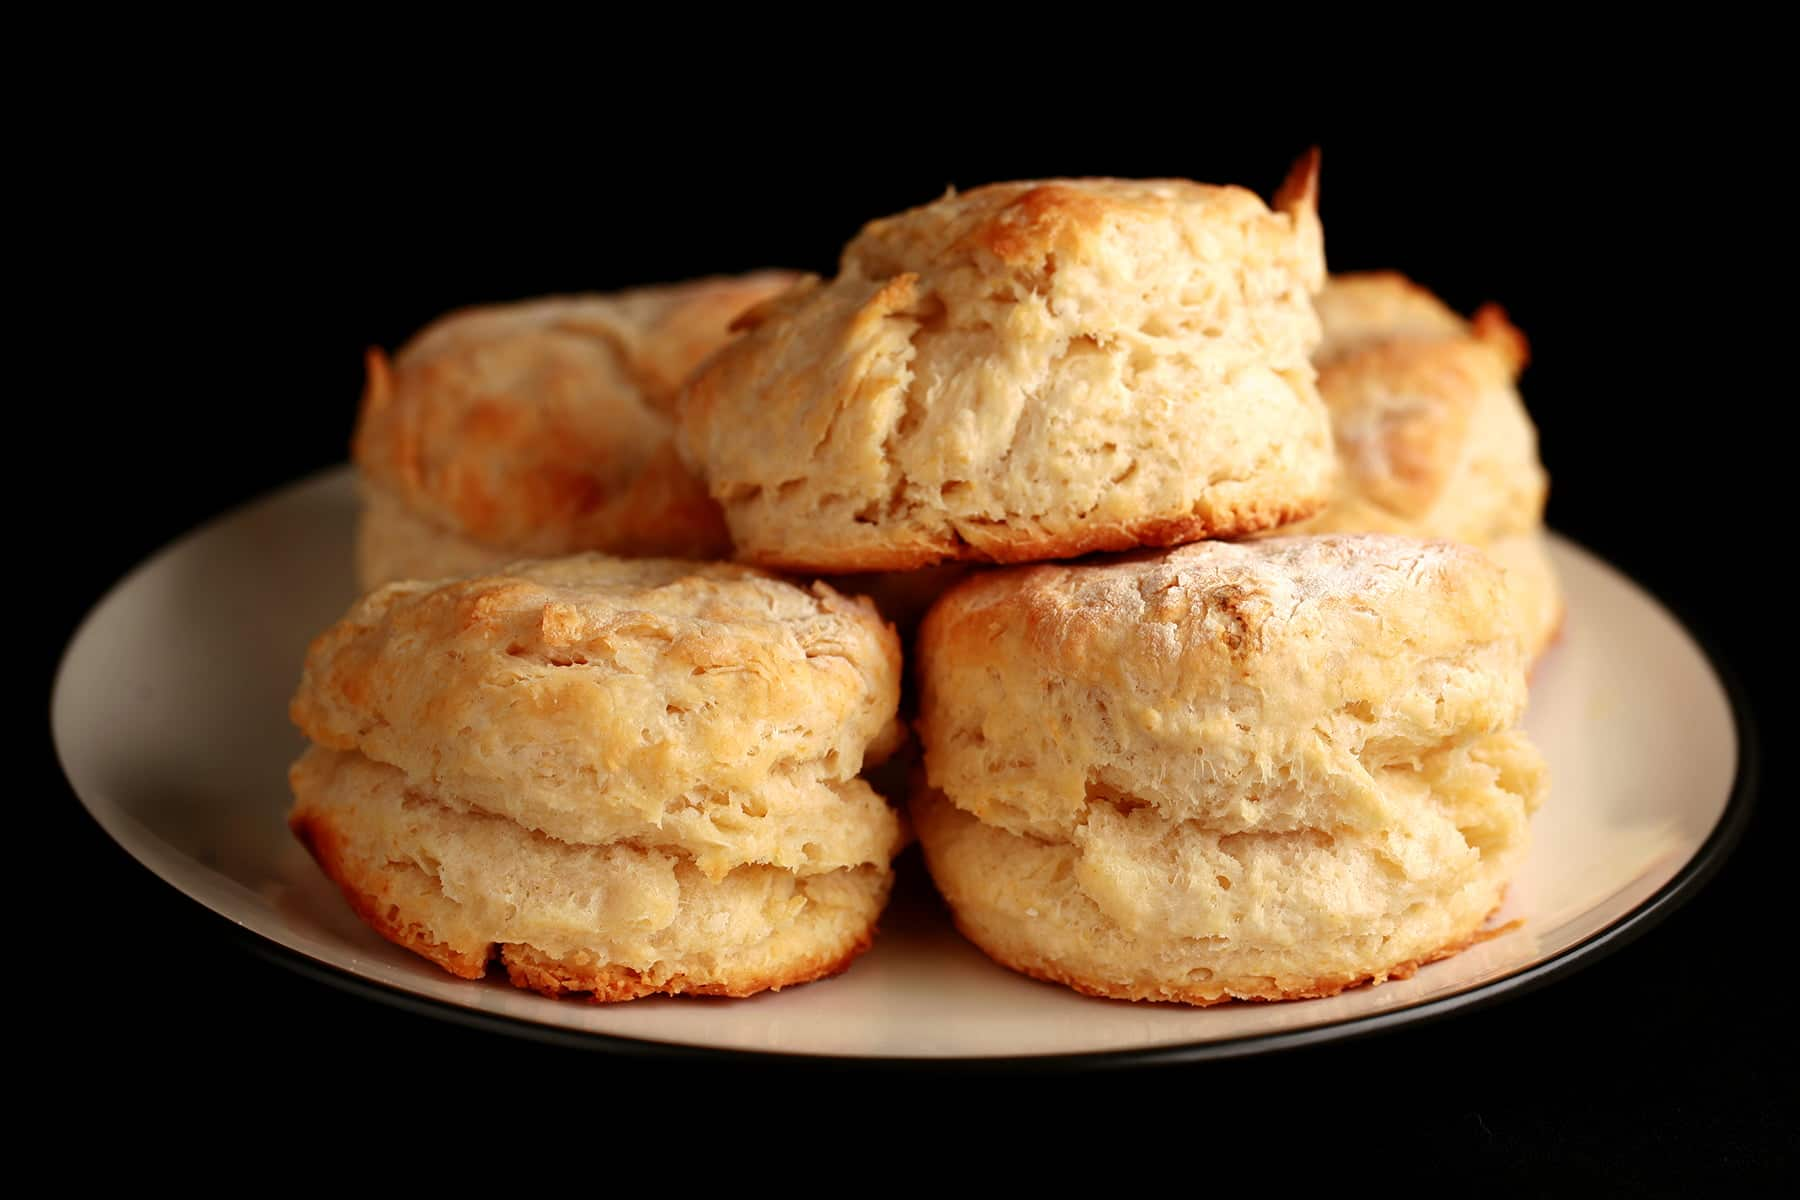 A small plate, stacked with golde, freshly baked biscuits.